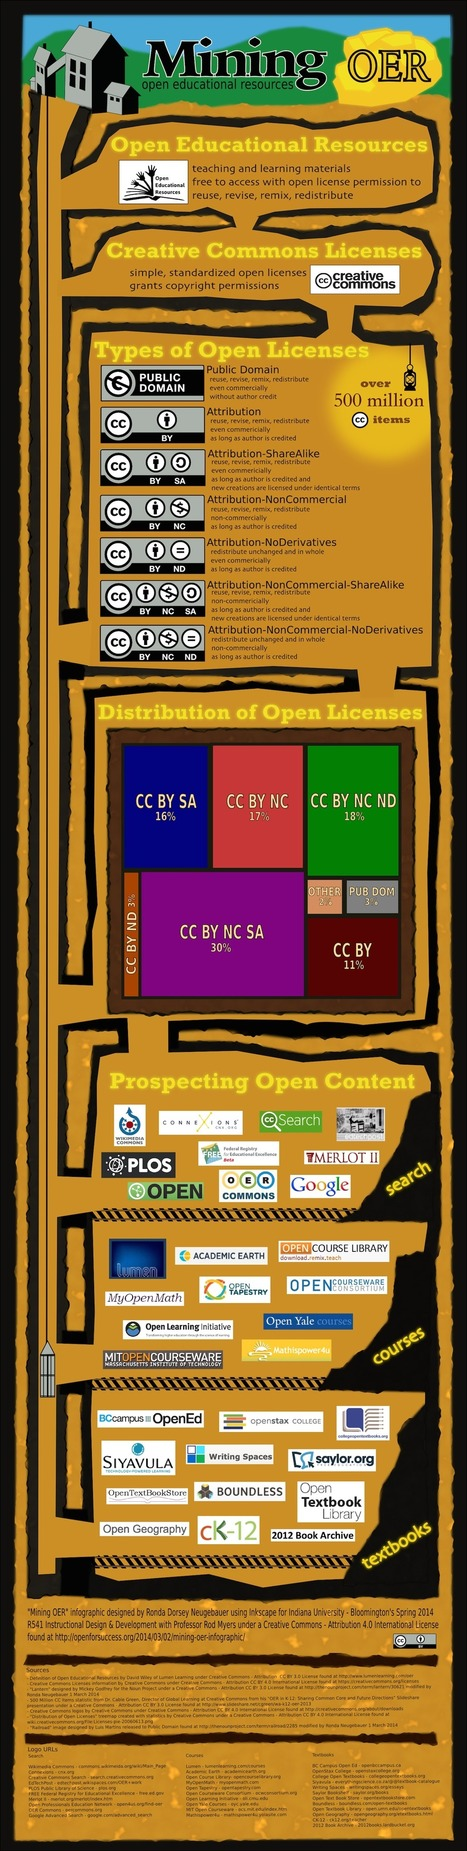 Mining OER infographic | A New Society, a new education! | Scoop.it